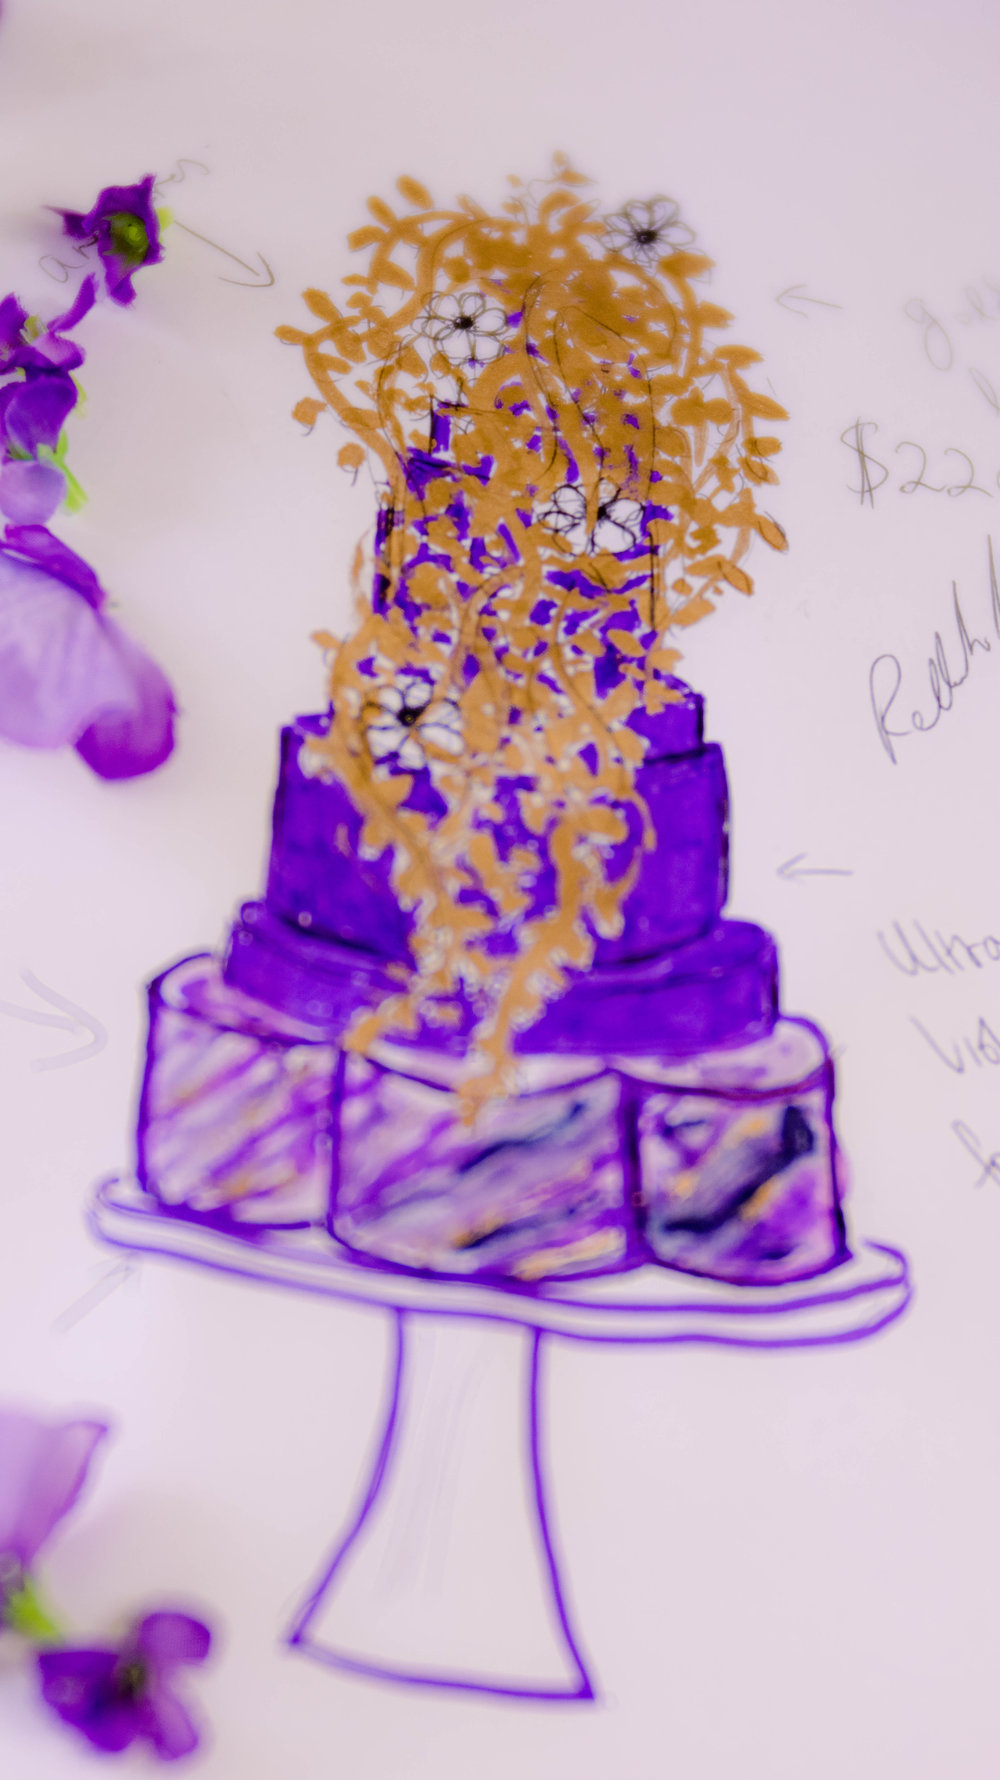 Sketching the design allows us to refine the details - The inspiration photo was transformed into the cake design during the sketching process and consultation.